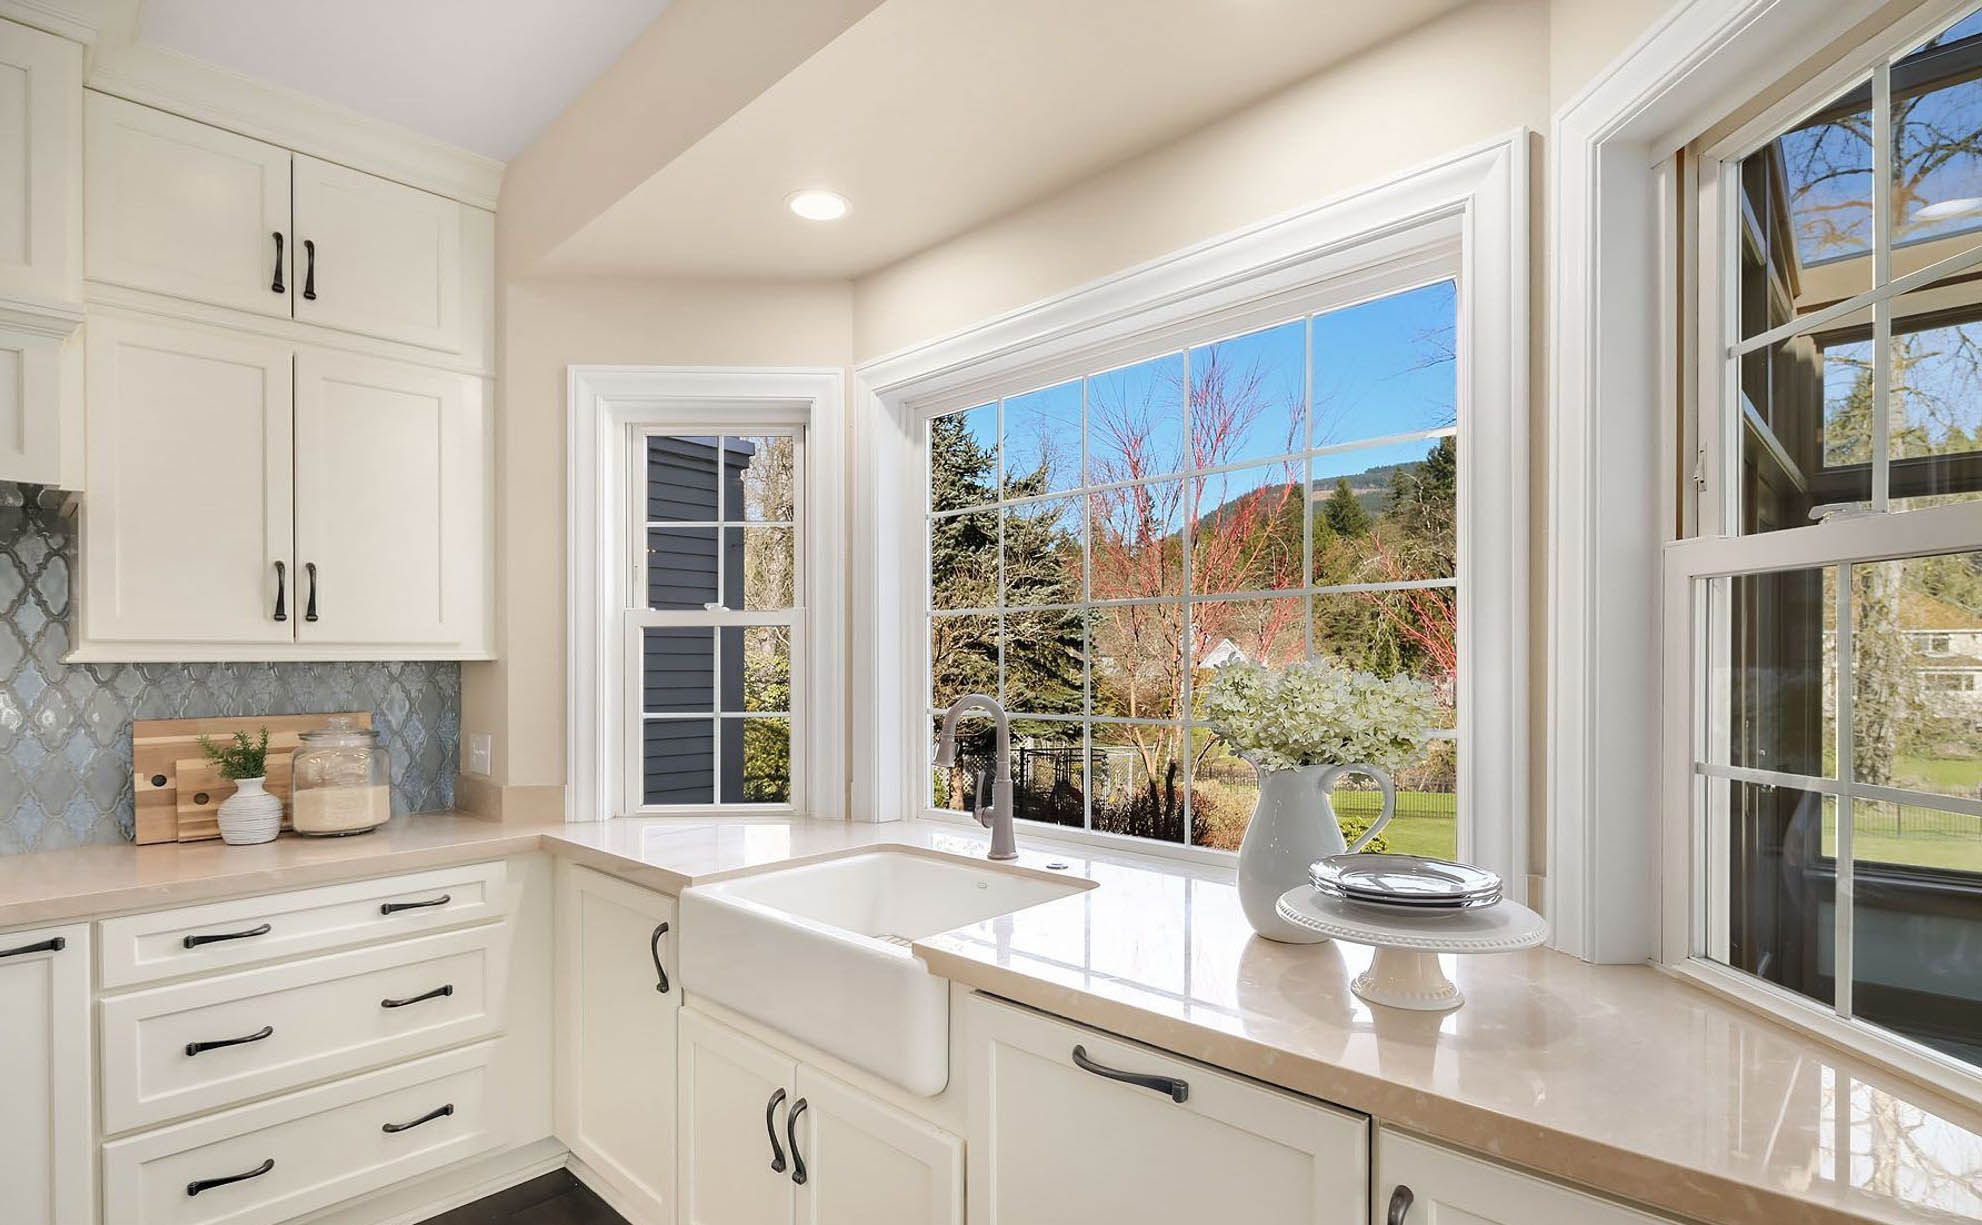 country style kitchen with a white enamel farmhouse sink with exposed apron and huge window